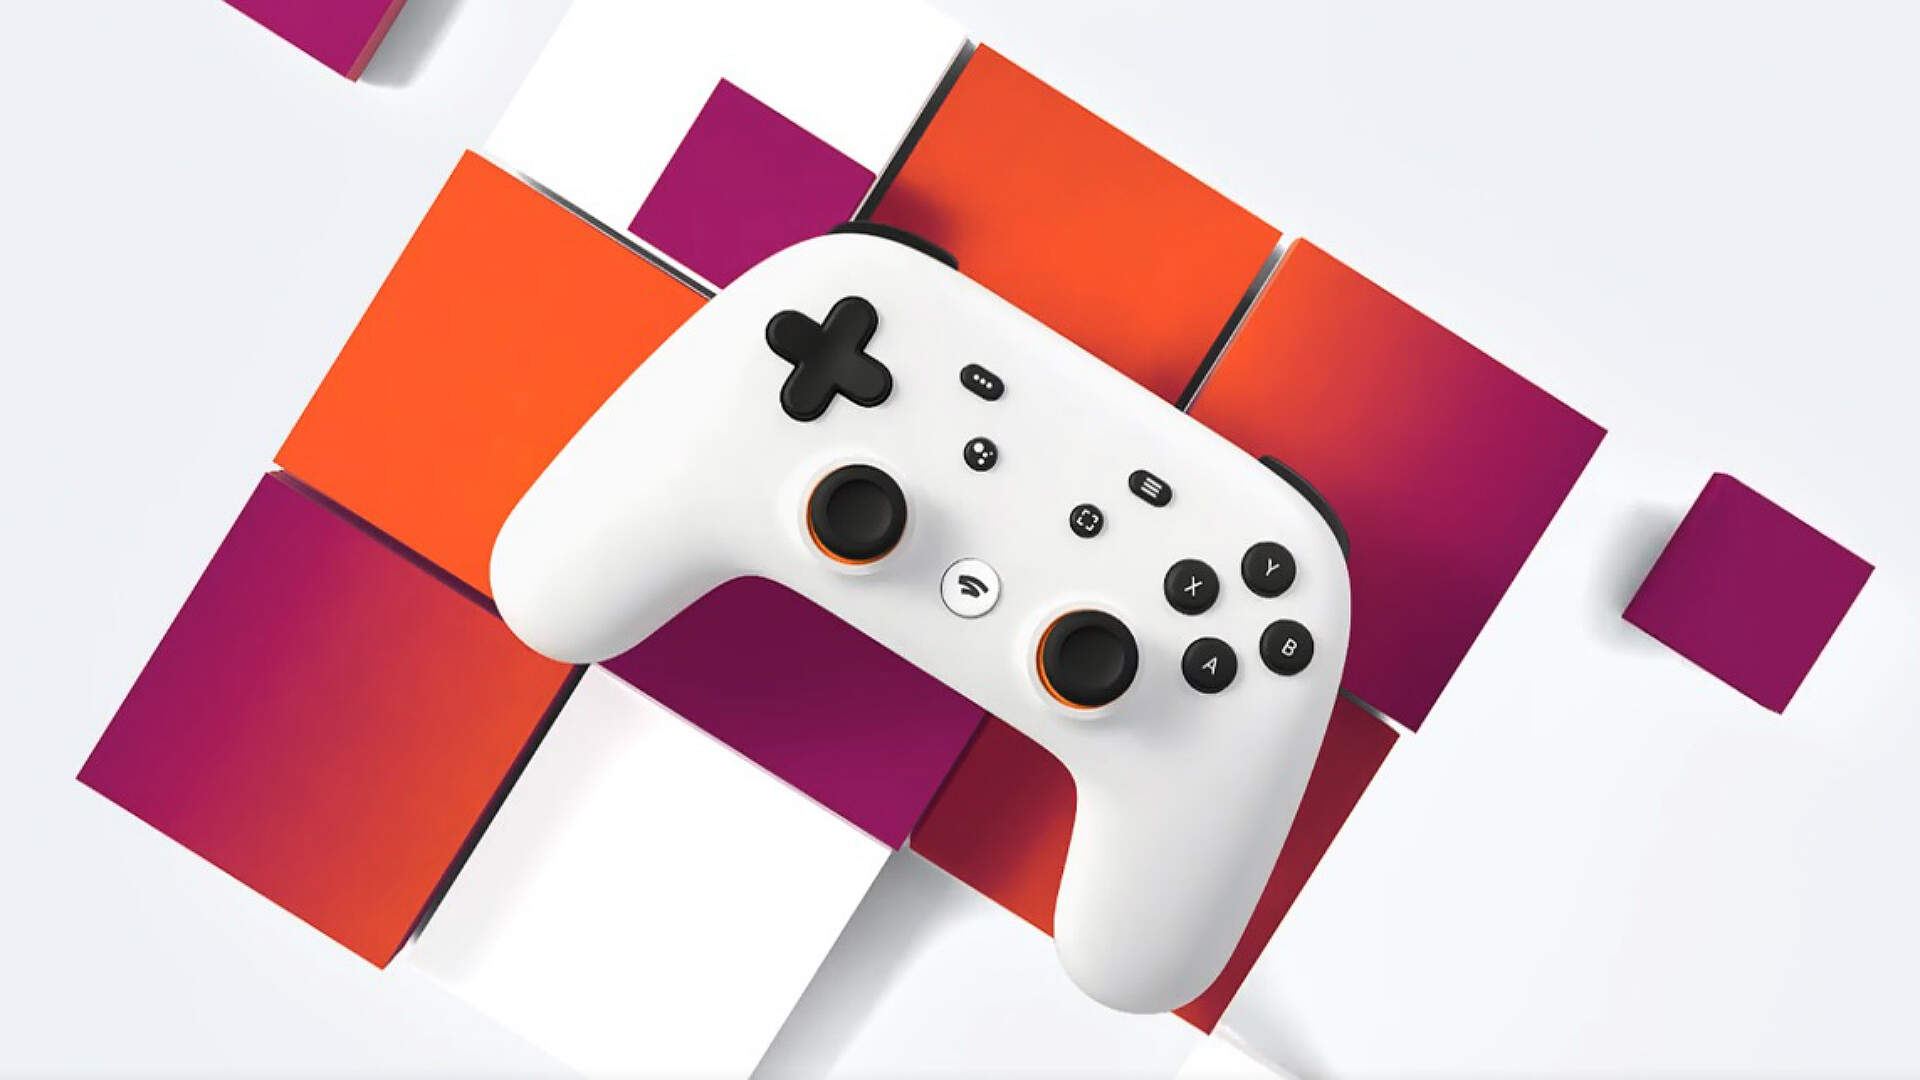 Take-Two CEO Says Google Stadia Overpromised On What It Could Deliver